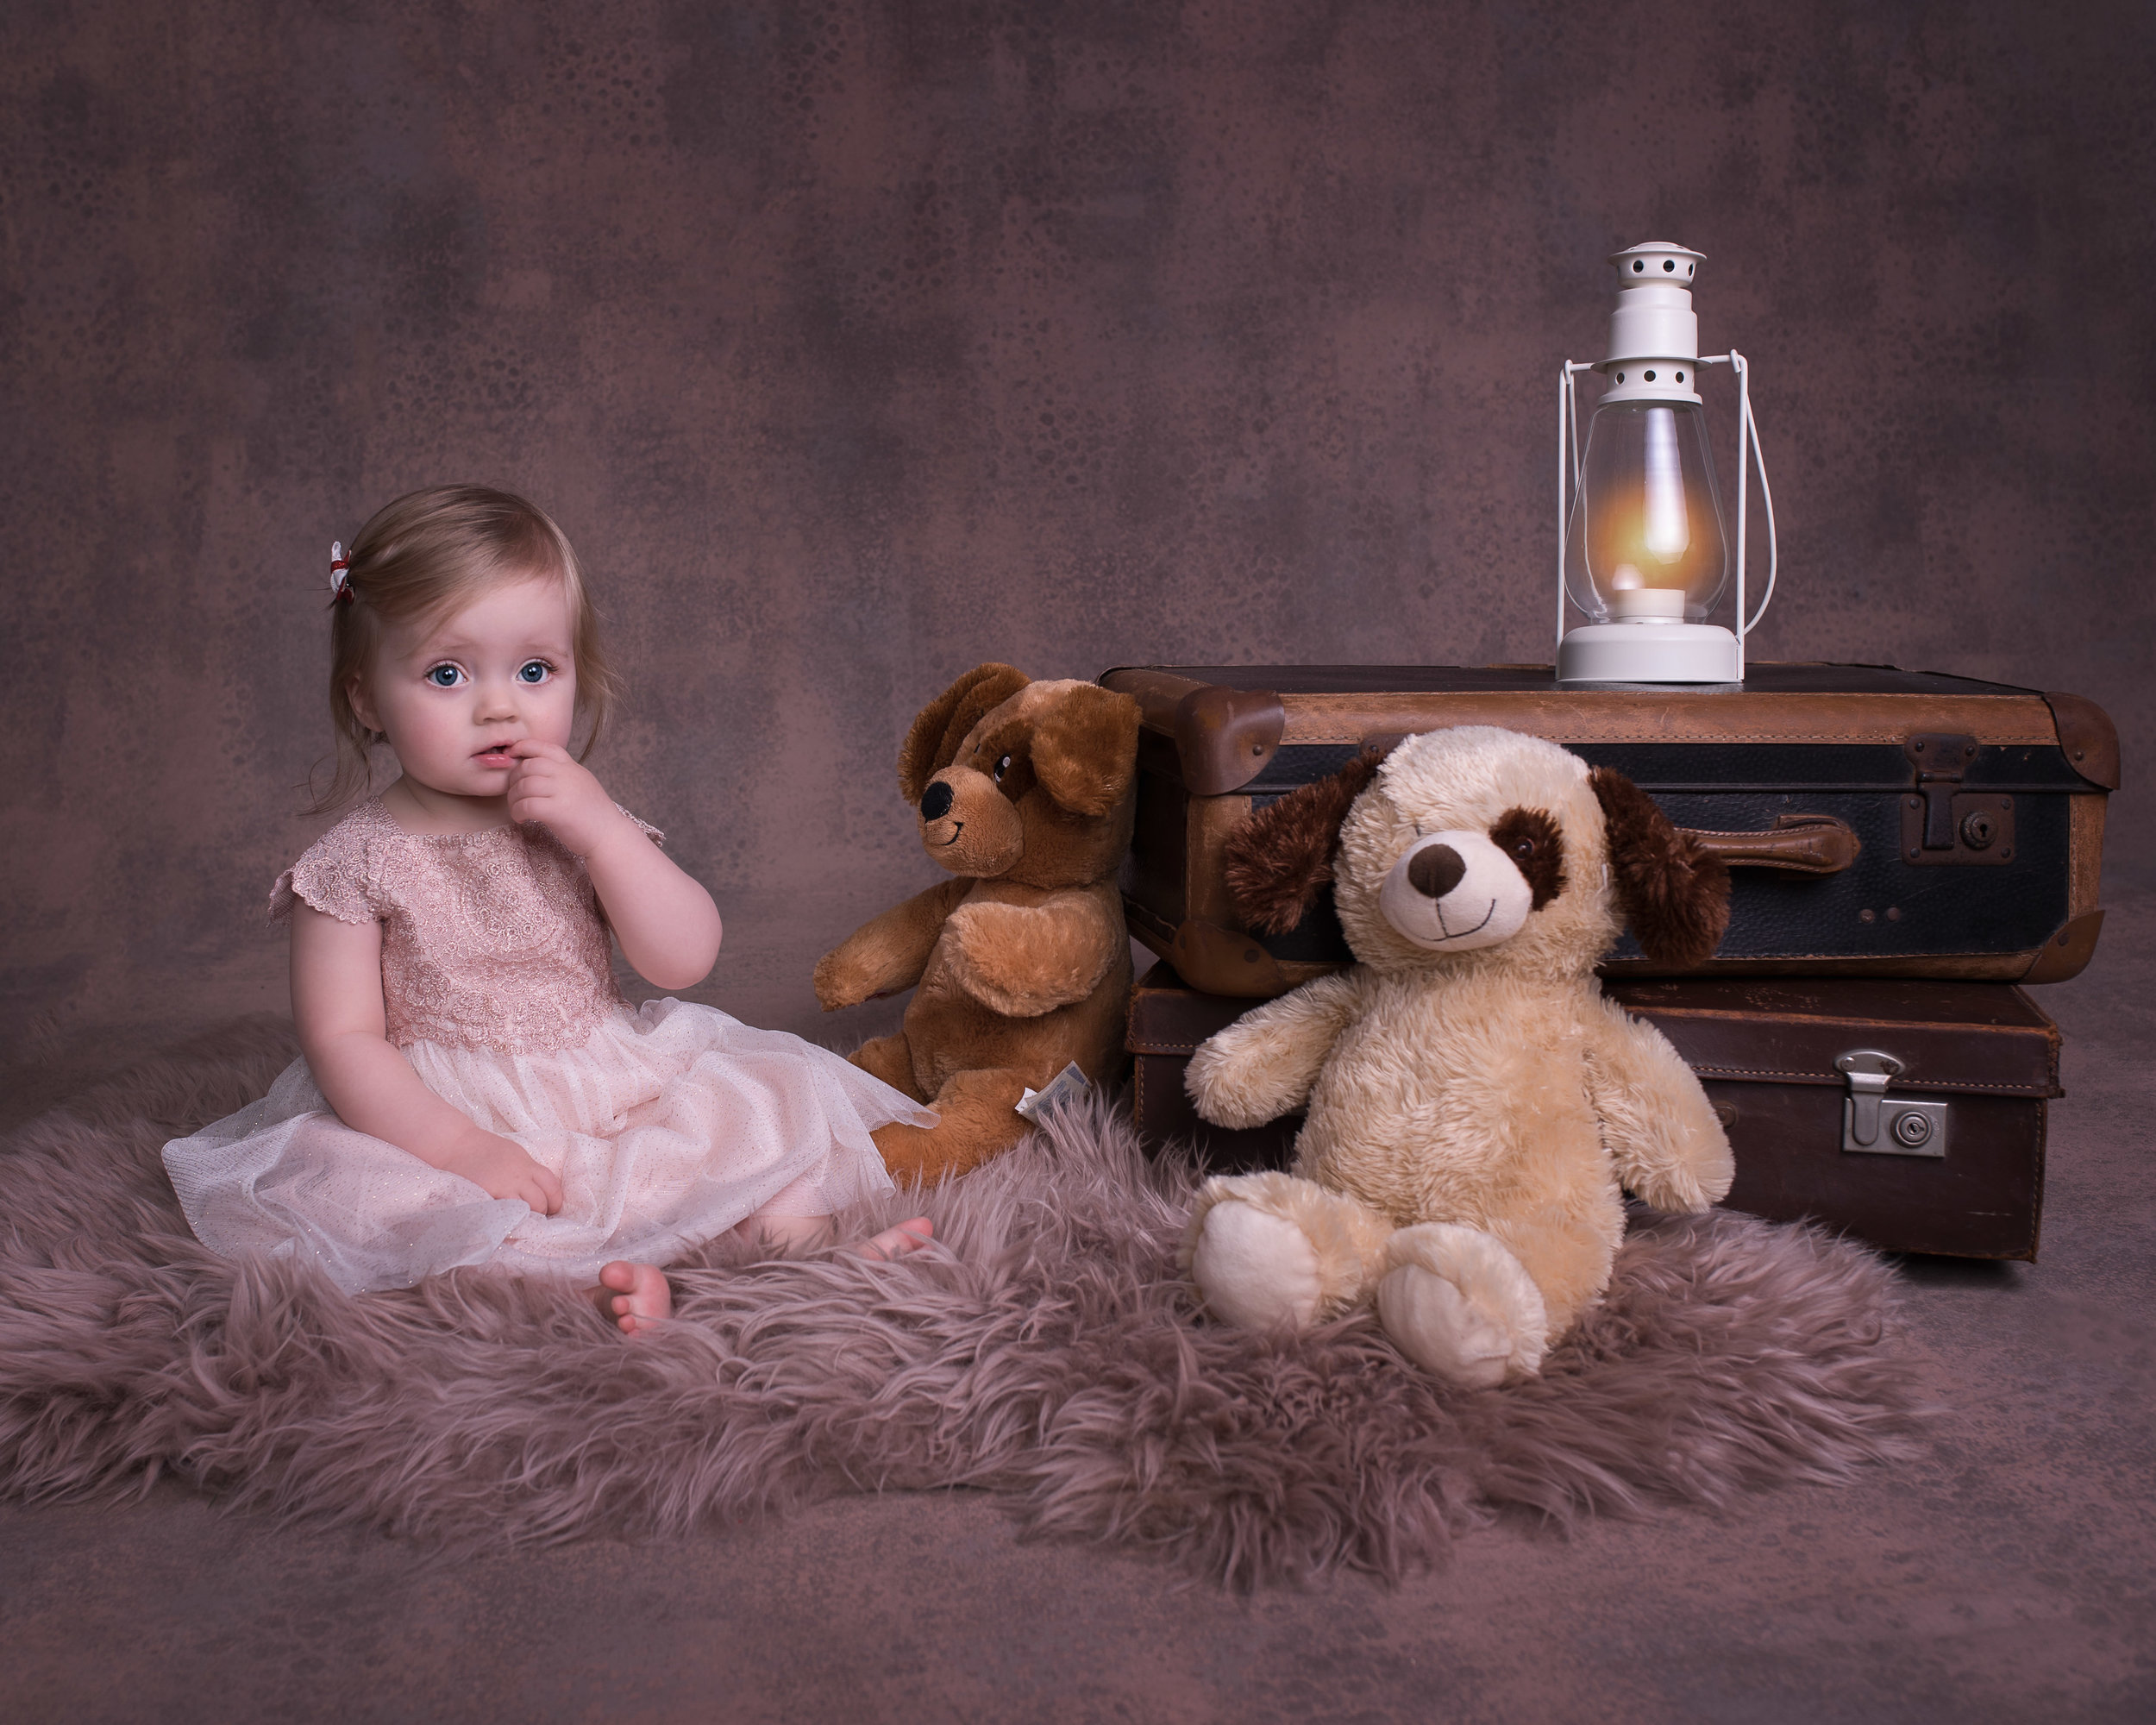 Elegant & timeless family portraiture, including newborn and other special milestones -